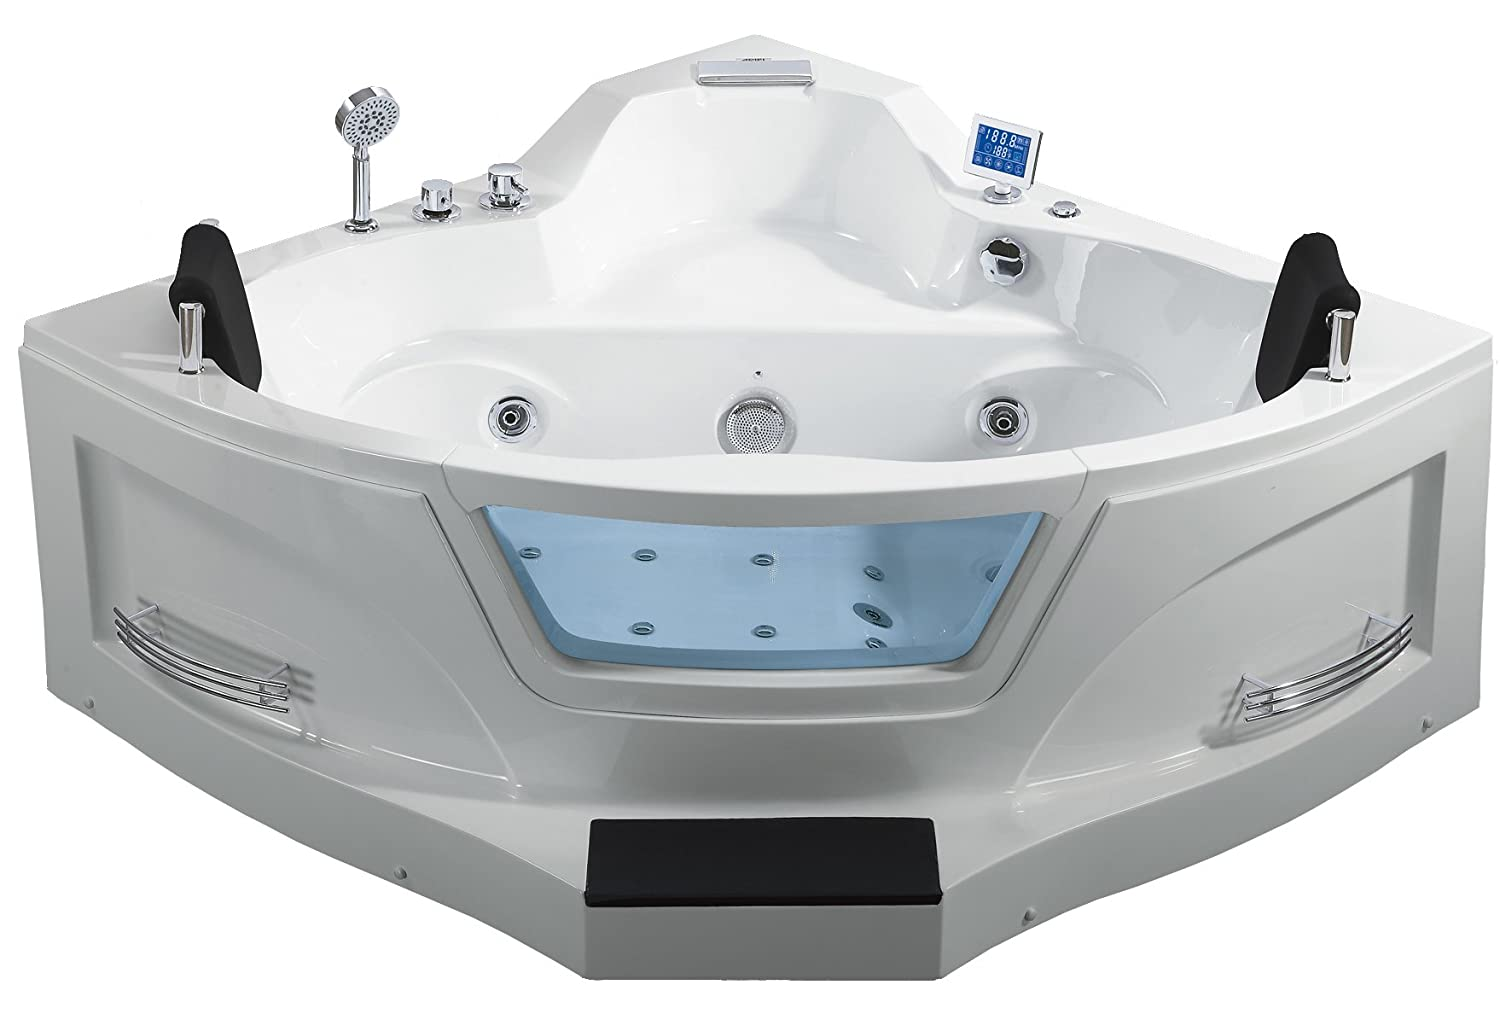 Ariel BT-084-2017 Whirlpool Bathtub - - Amazon.com